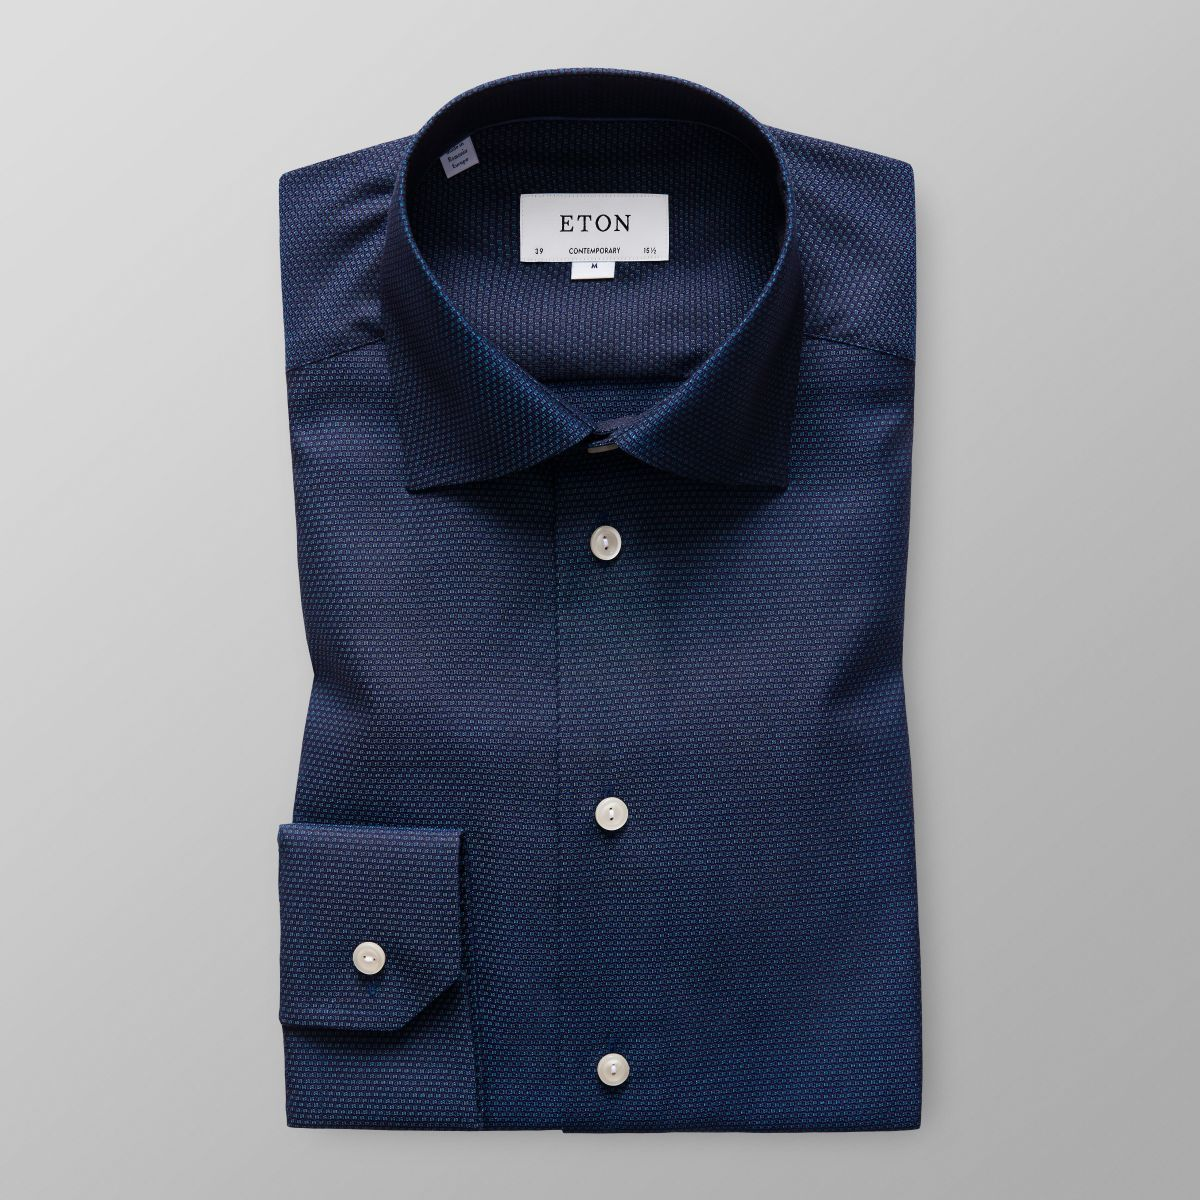 Contemporary fit Navy Striped Shirt Eton